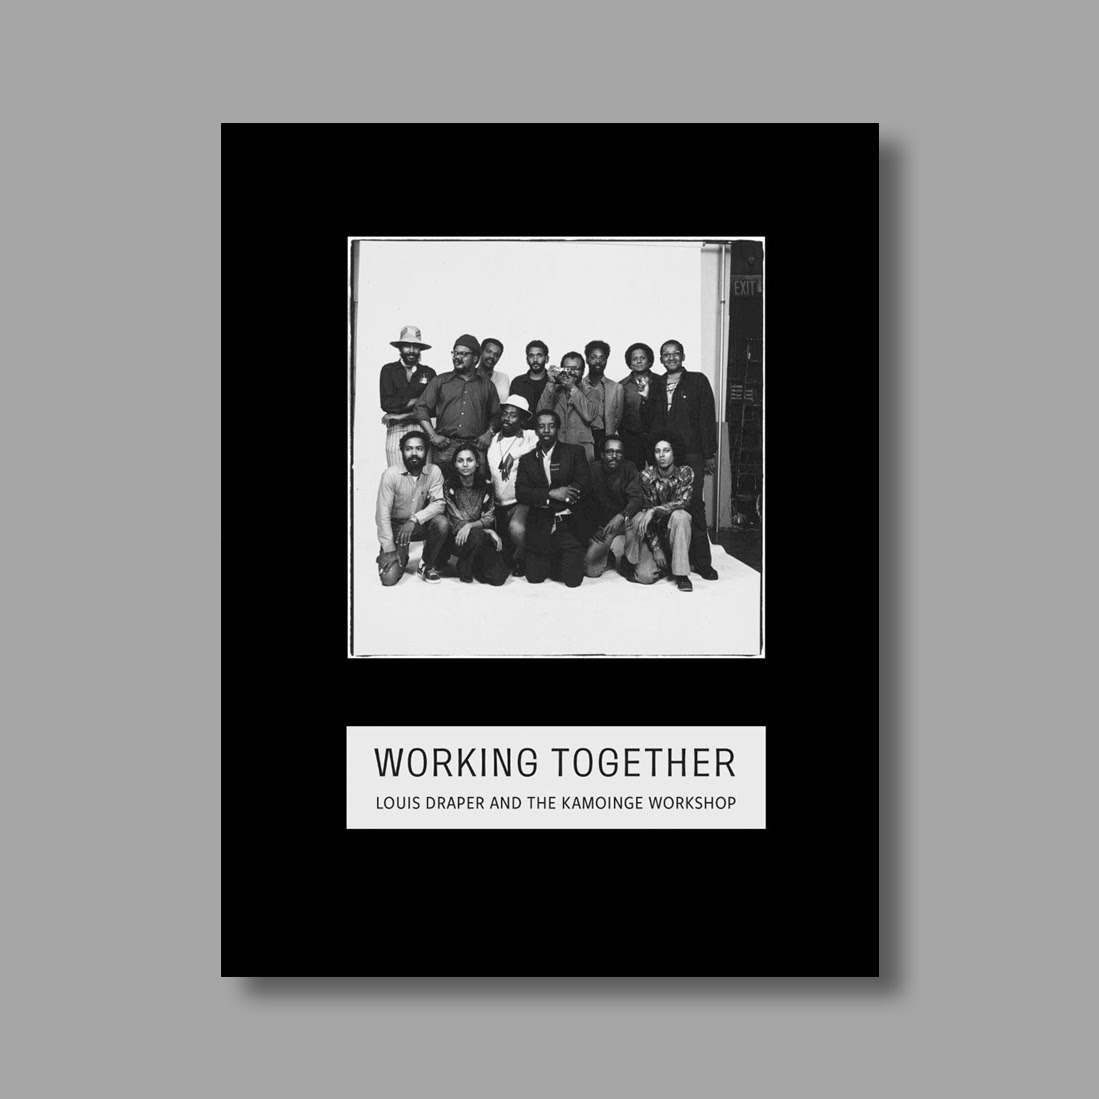 Working Together exhibition catalogue